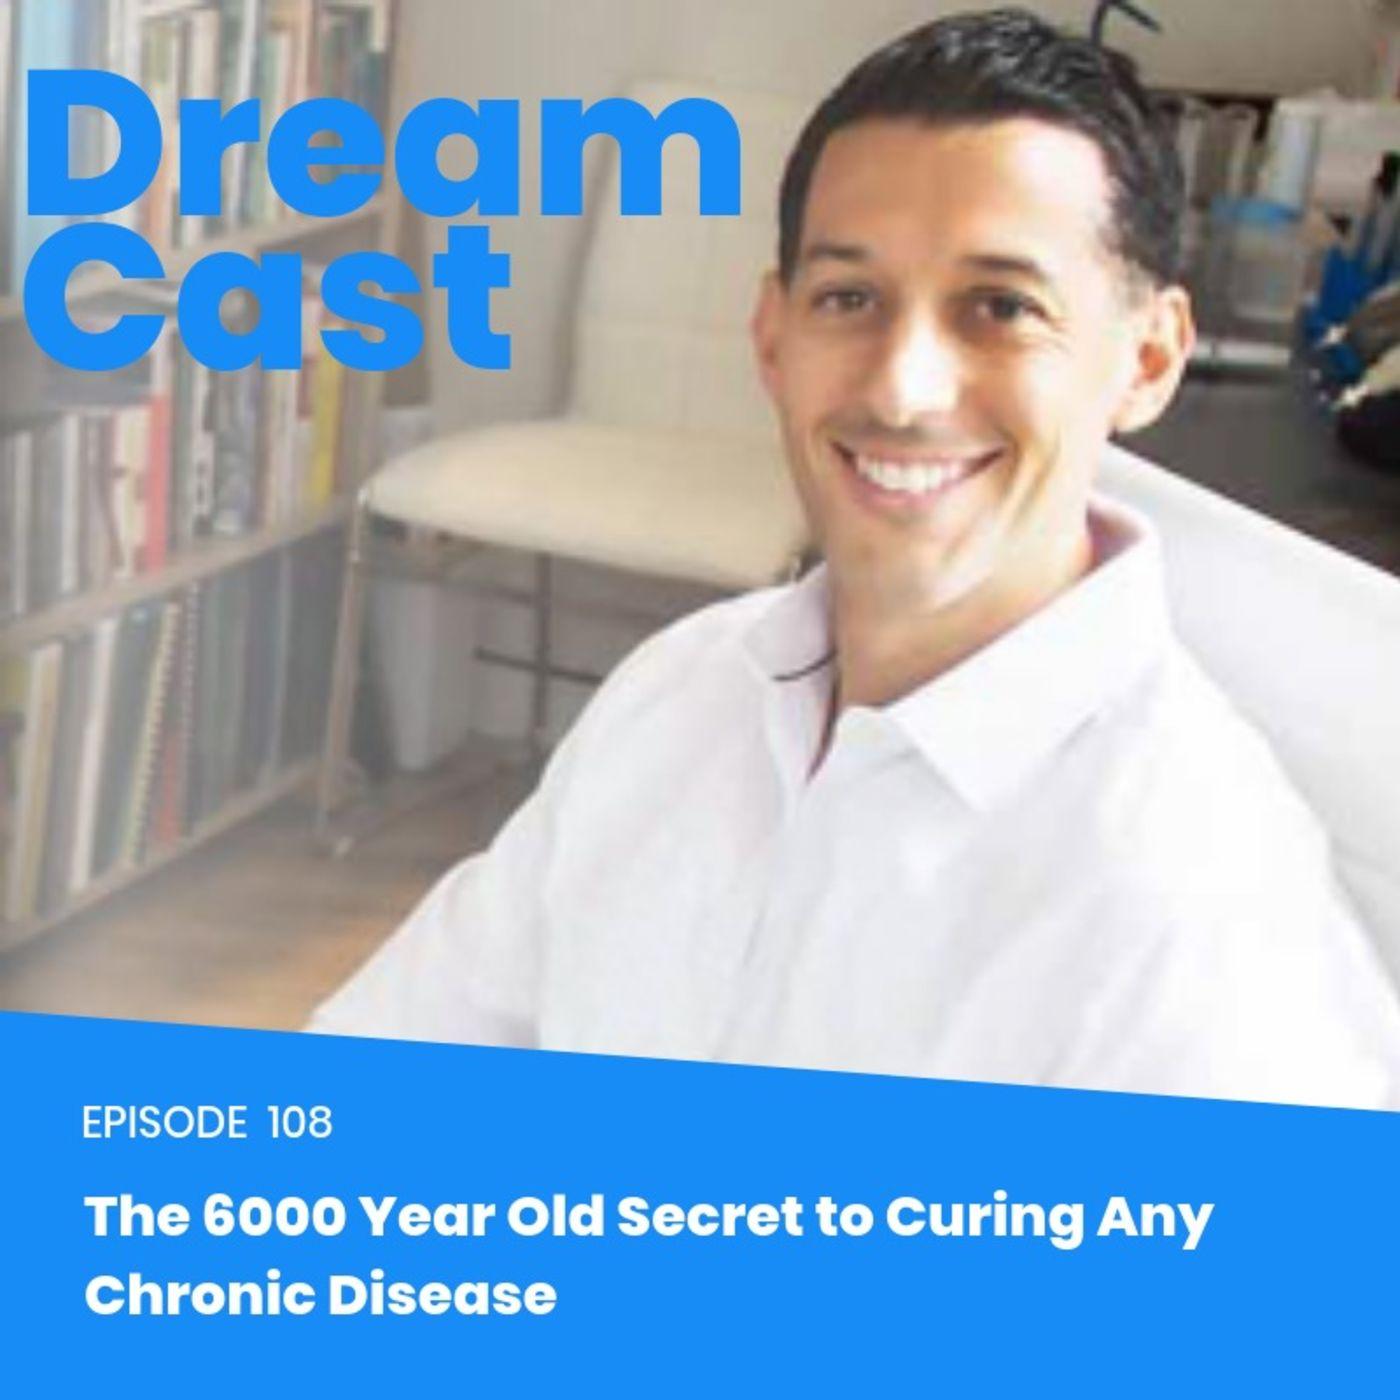 Episode 108 - The 6000 Year Old Secret to Curing Any Chronic Disease